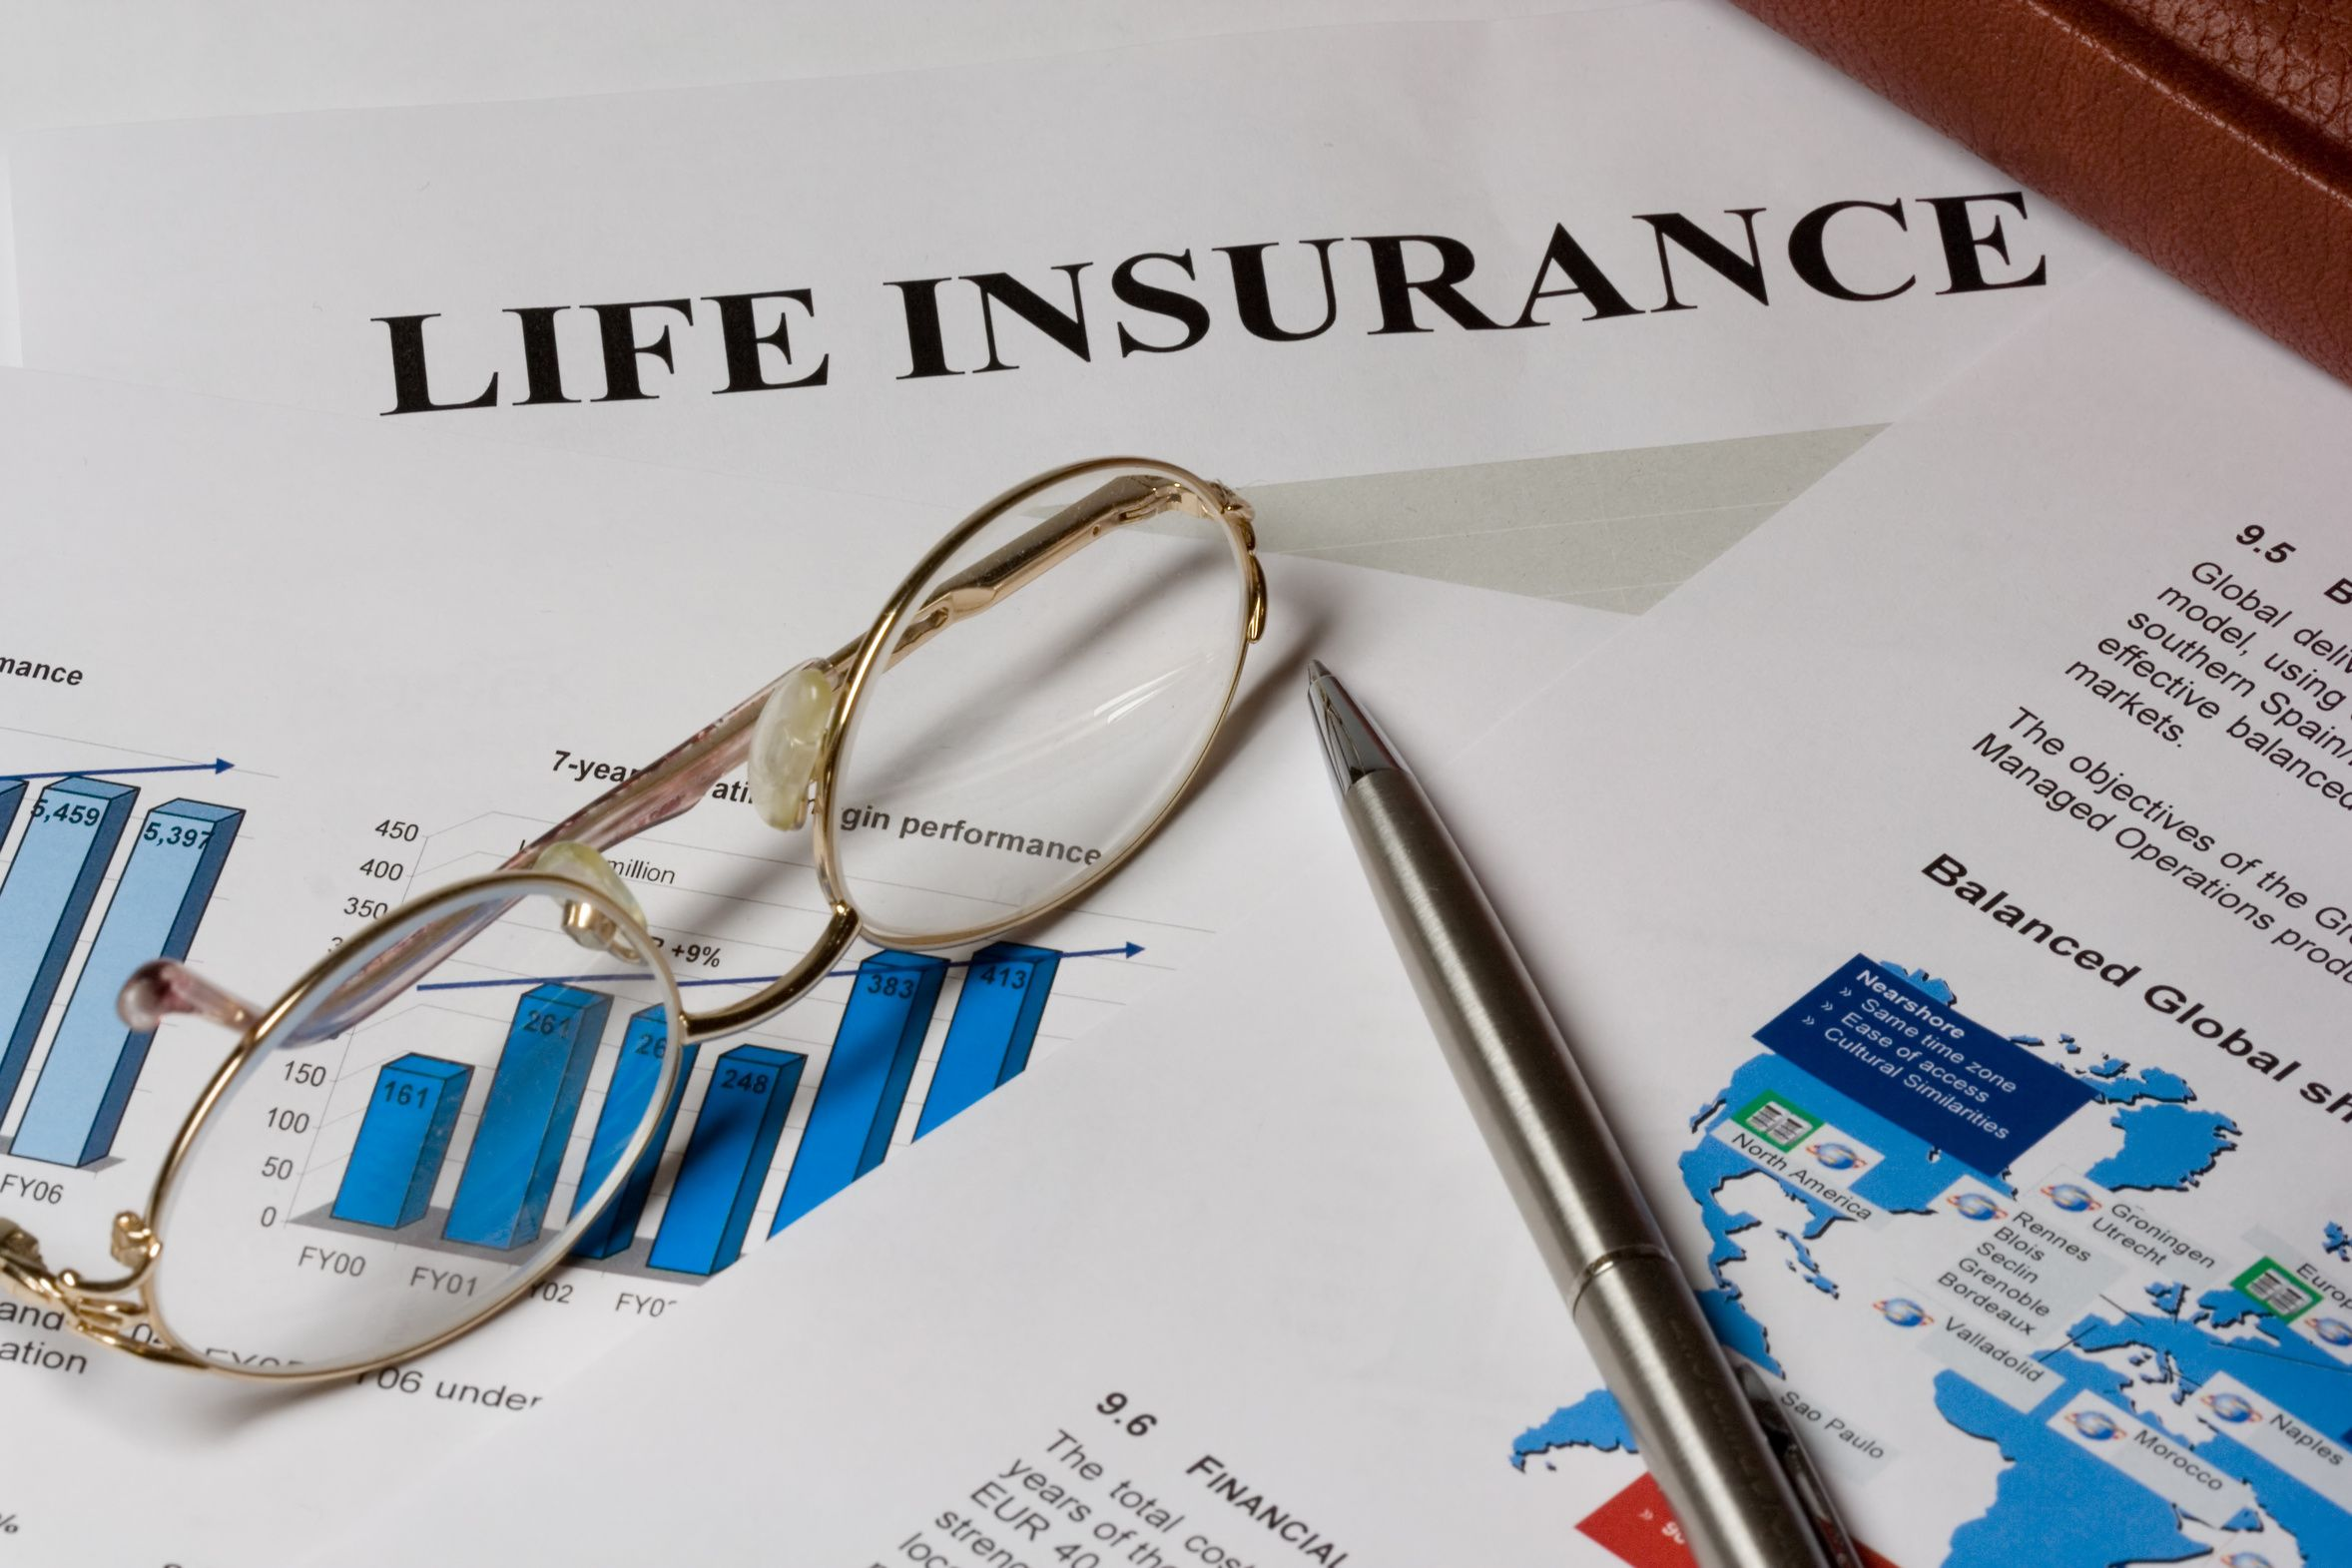 Joint Life Insurance Is What Couples Can Opt For Instead Of